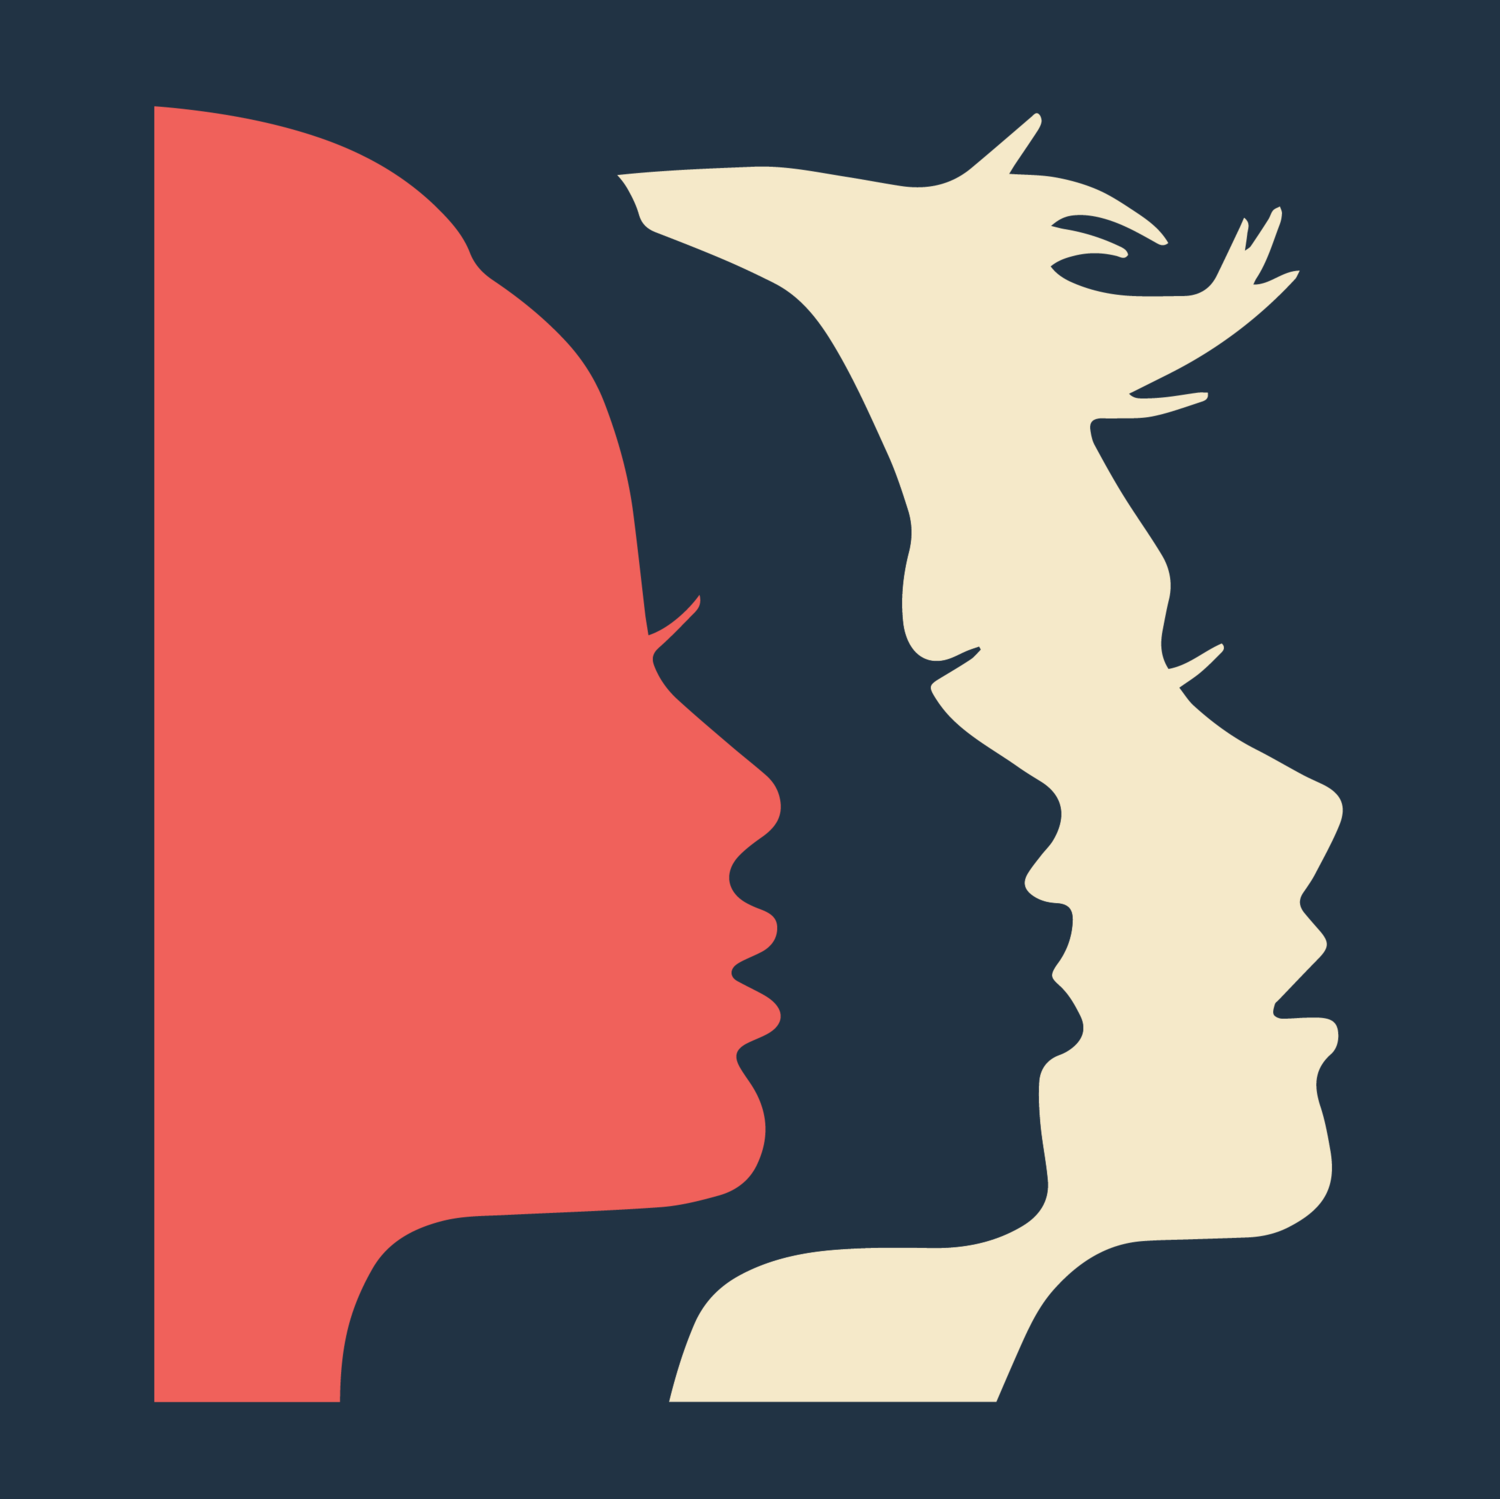 Youth Empower Womens March